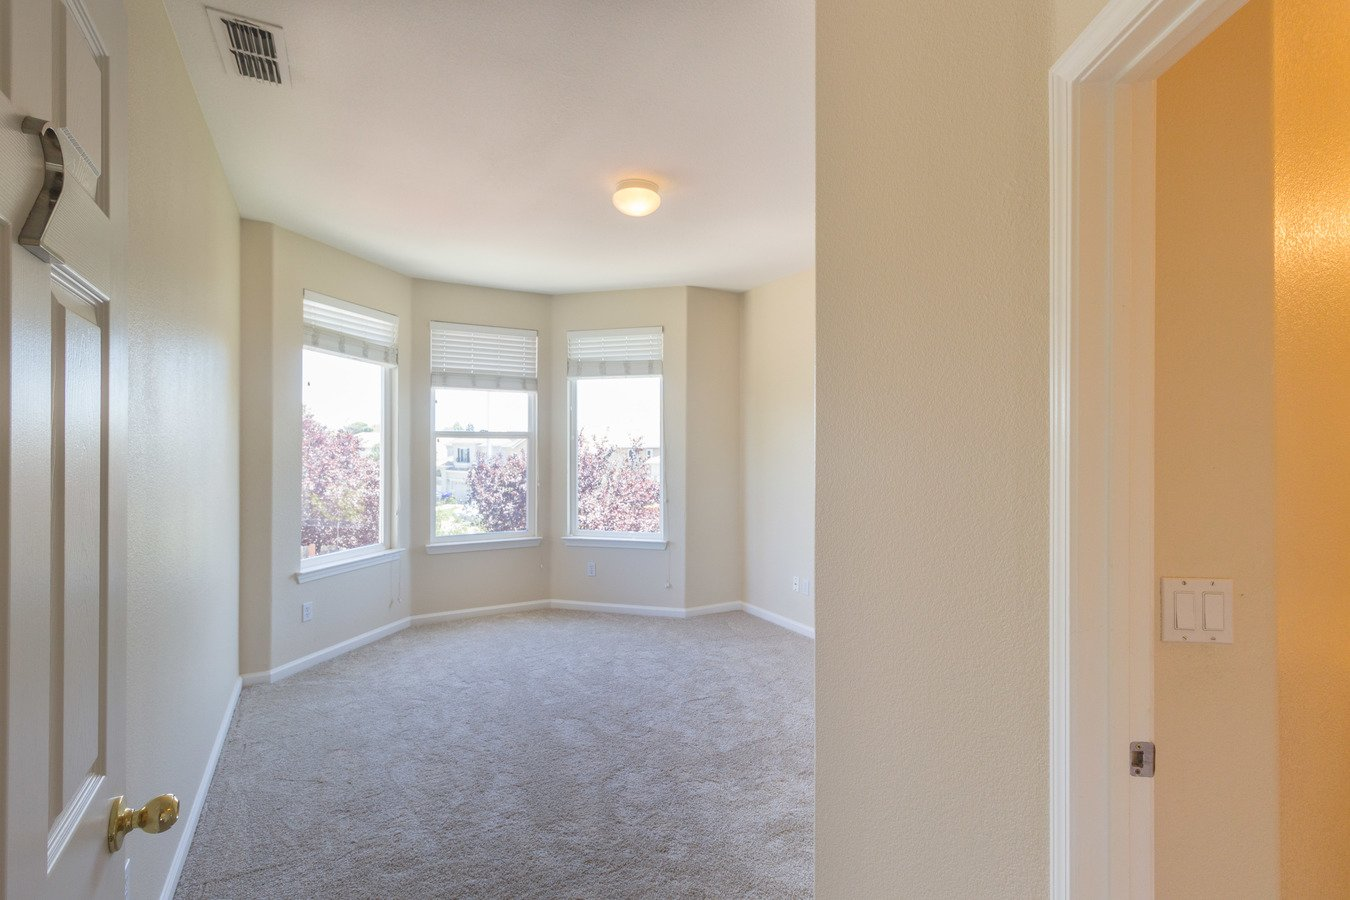 1 Bedroom 1 Bathroom House for rent at Hillcrest House in Antioch, CA